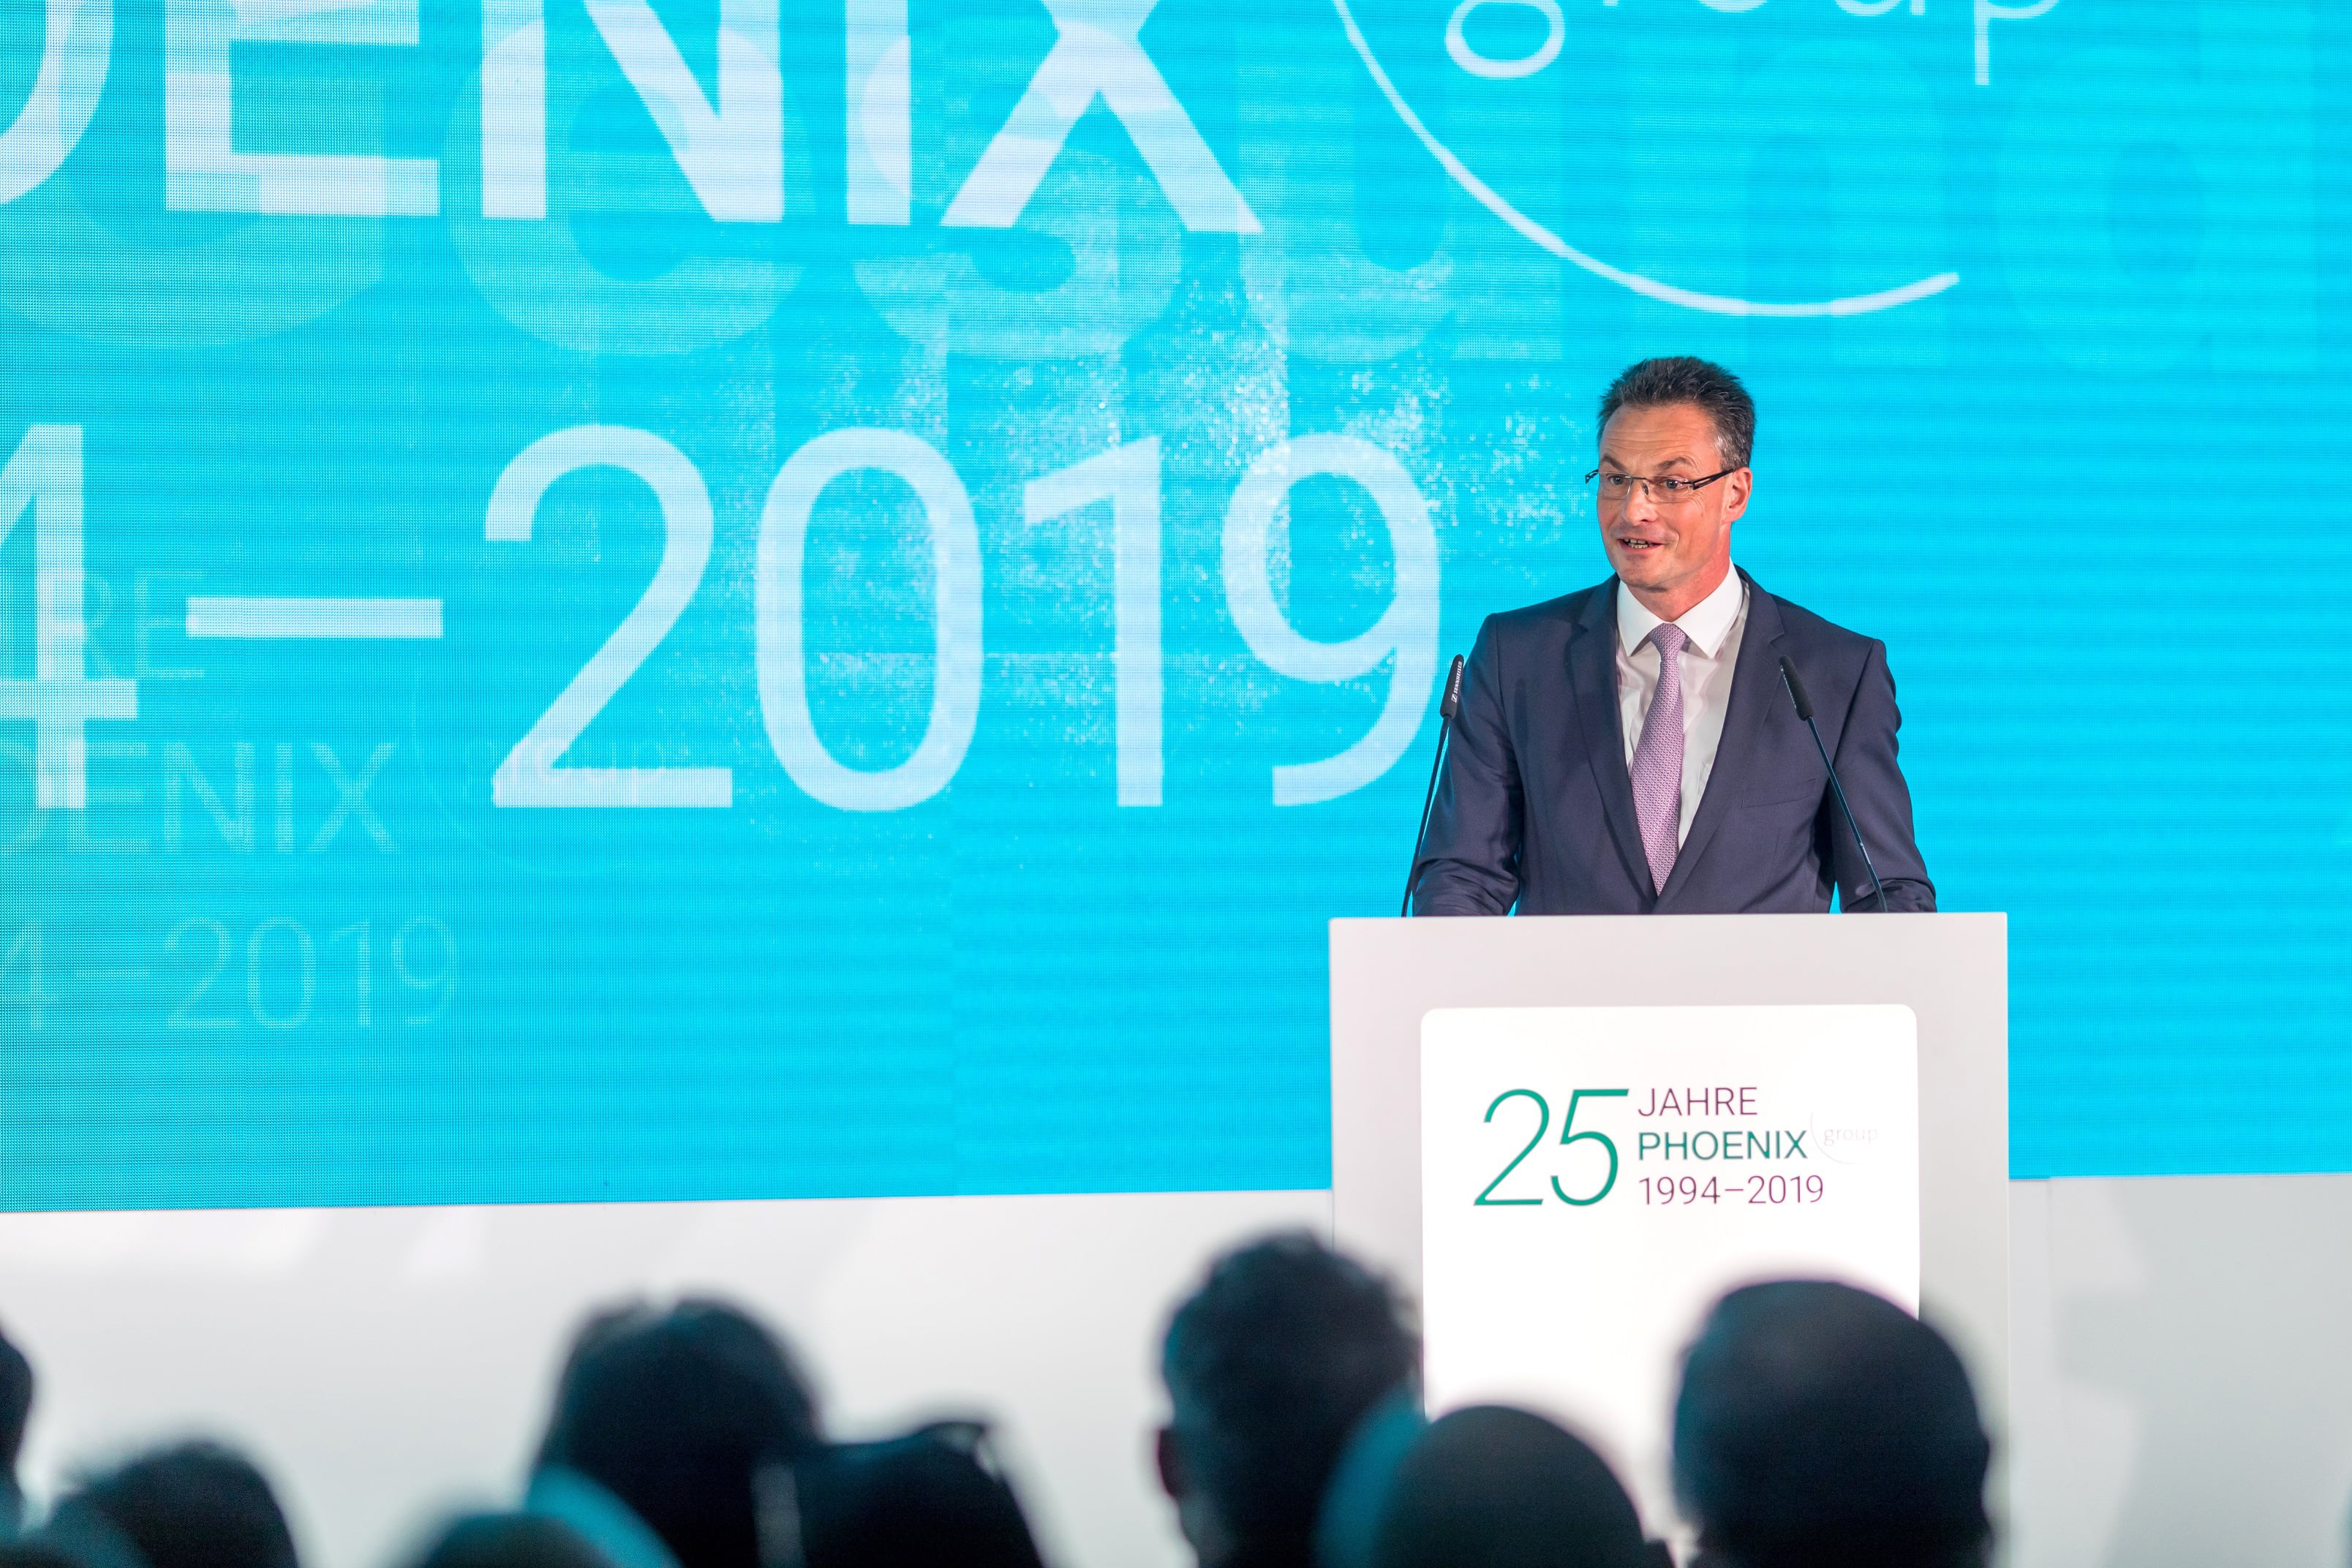 25 years of PHOENIX: a family business says thank you